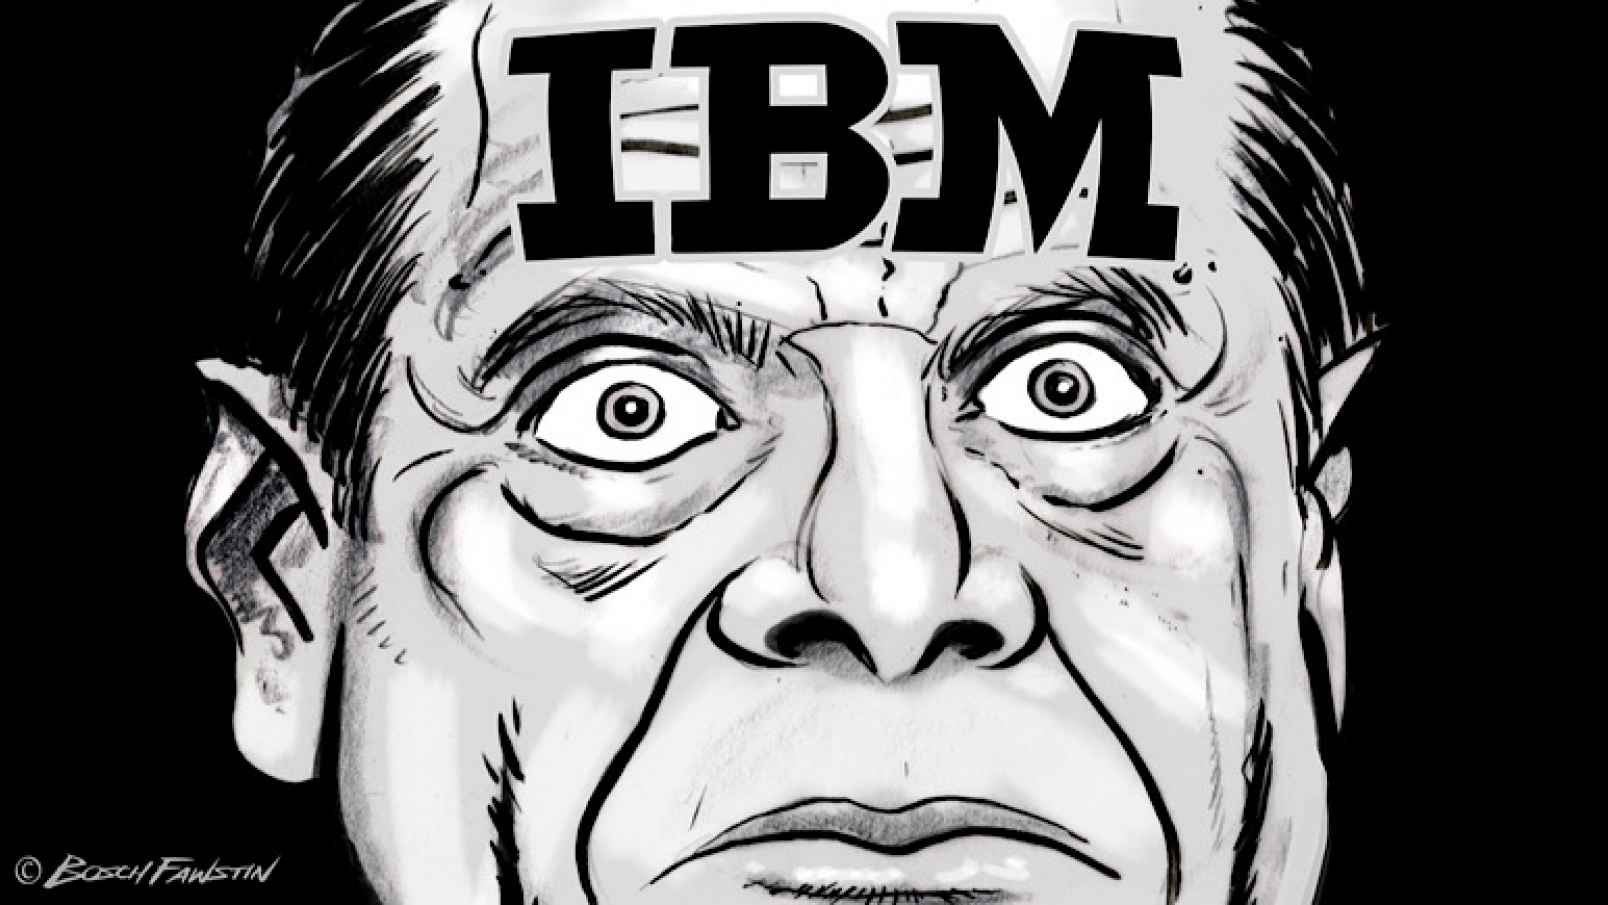 Cuomo's Vaccine Passports and the IBM Connection - Frontpagemag